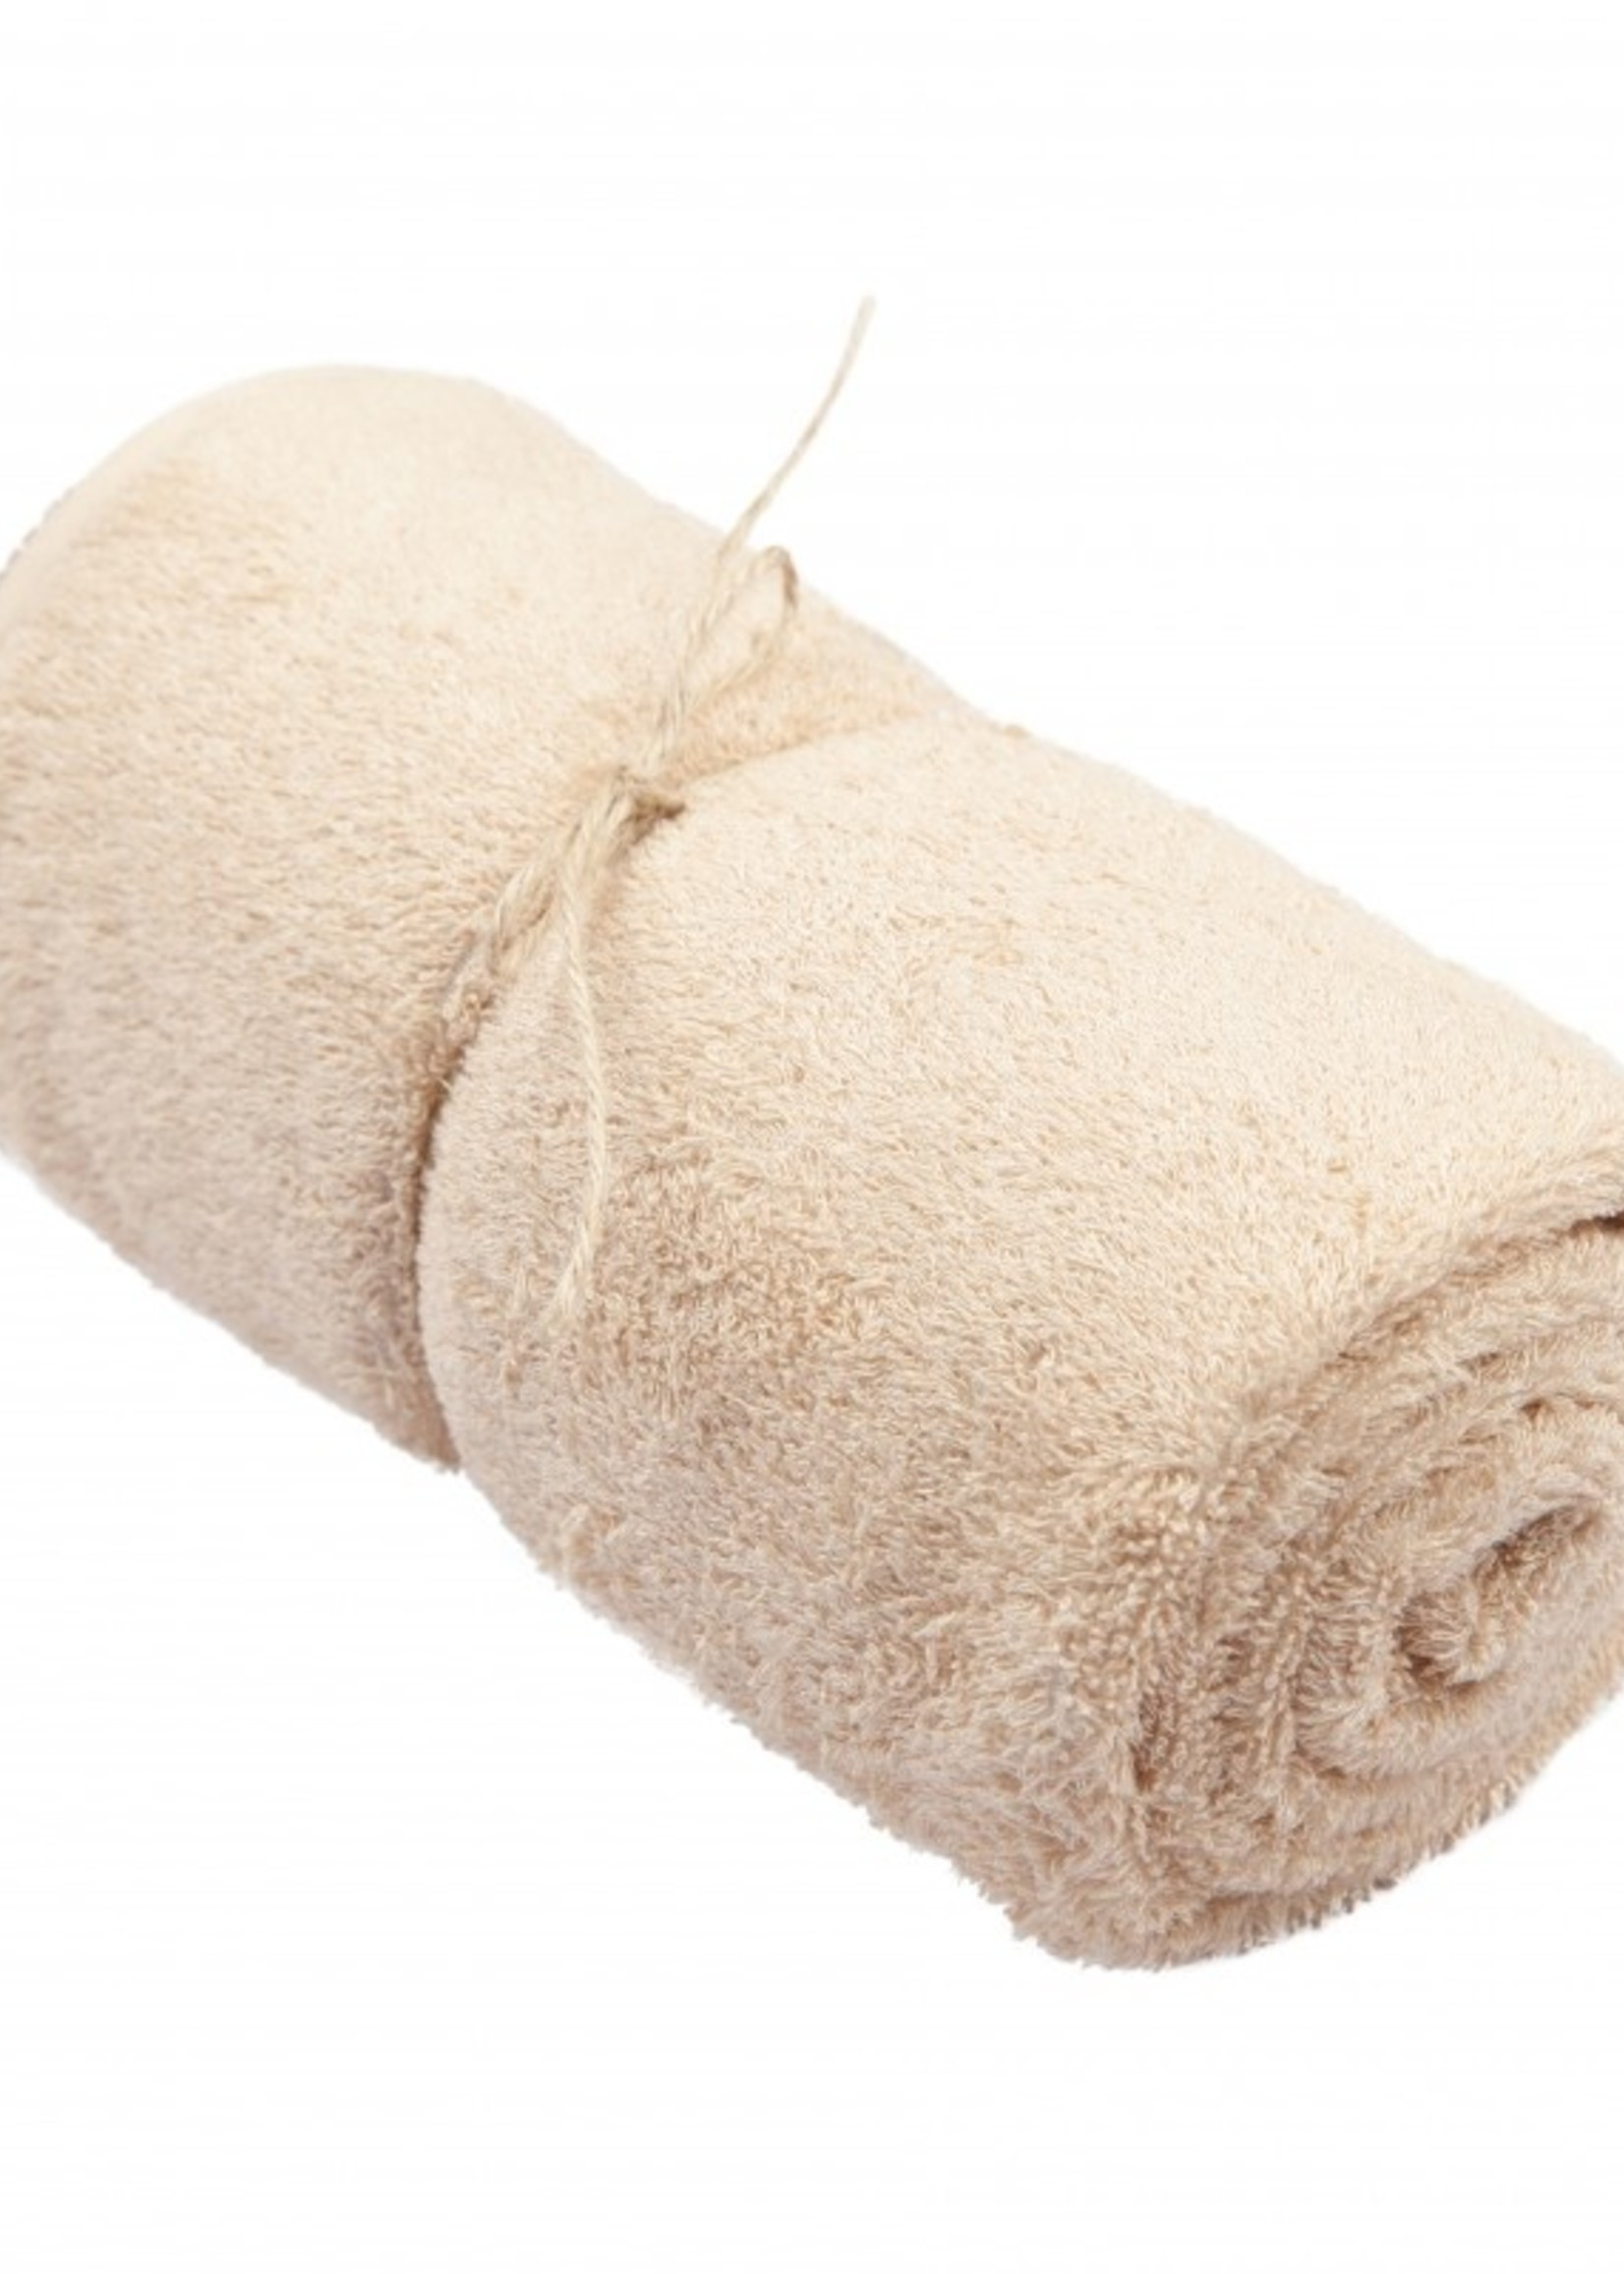 Timboo Towel Extra Large - Frosted Almond